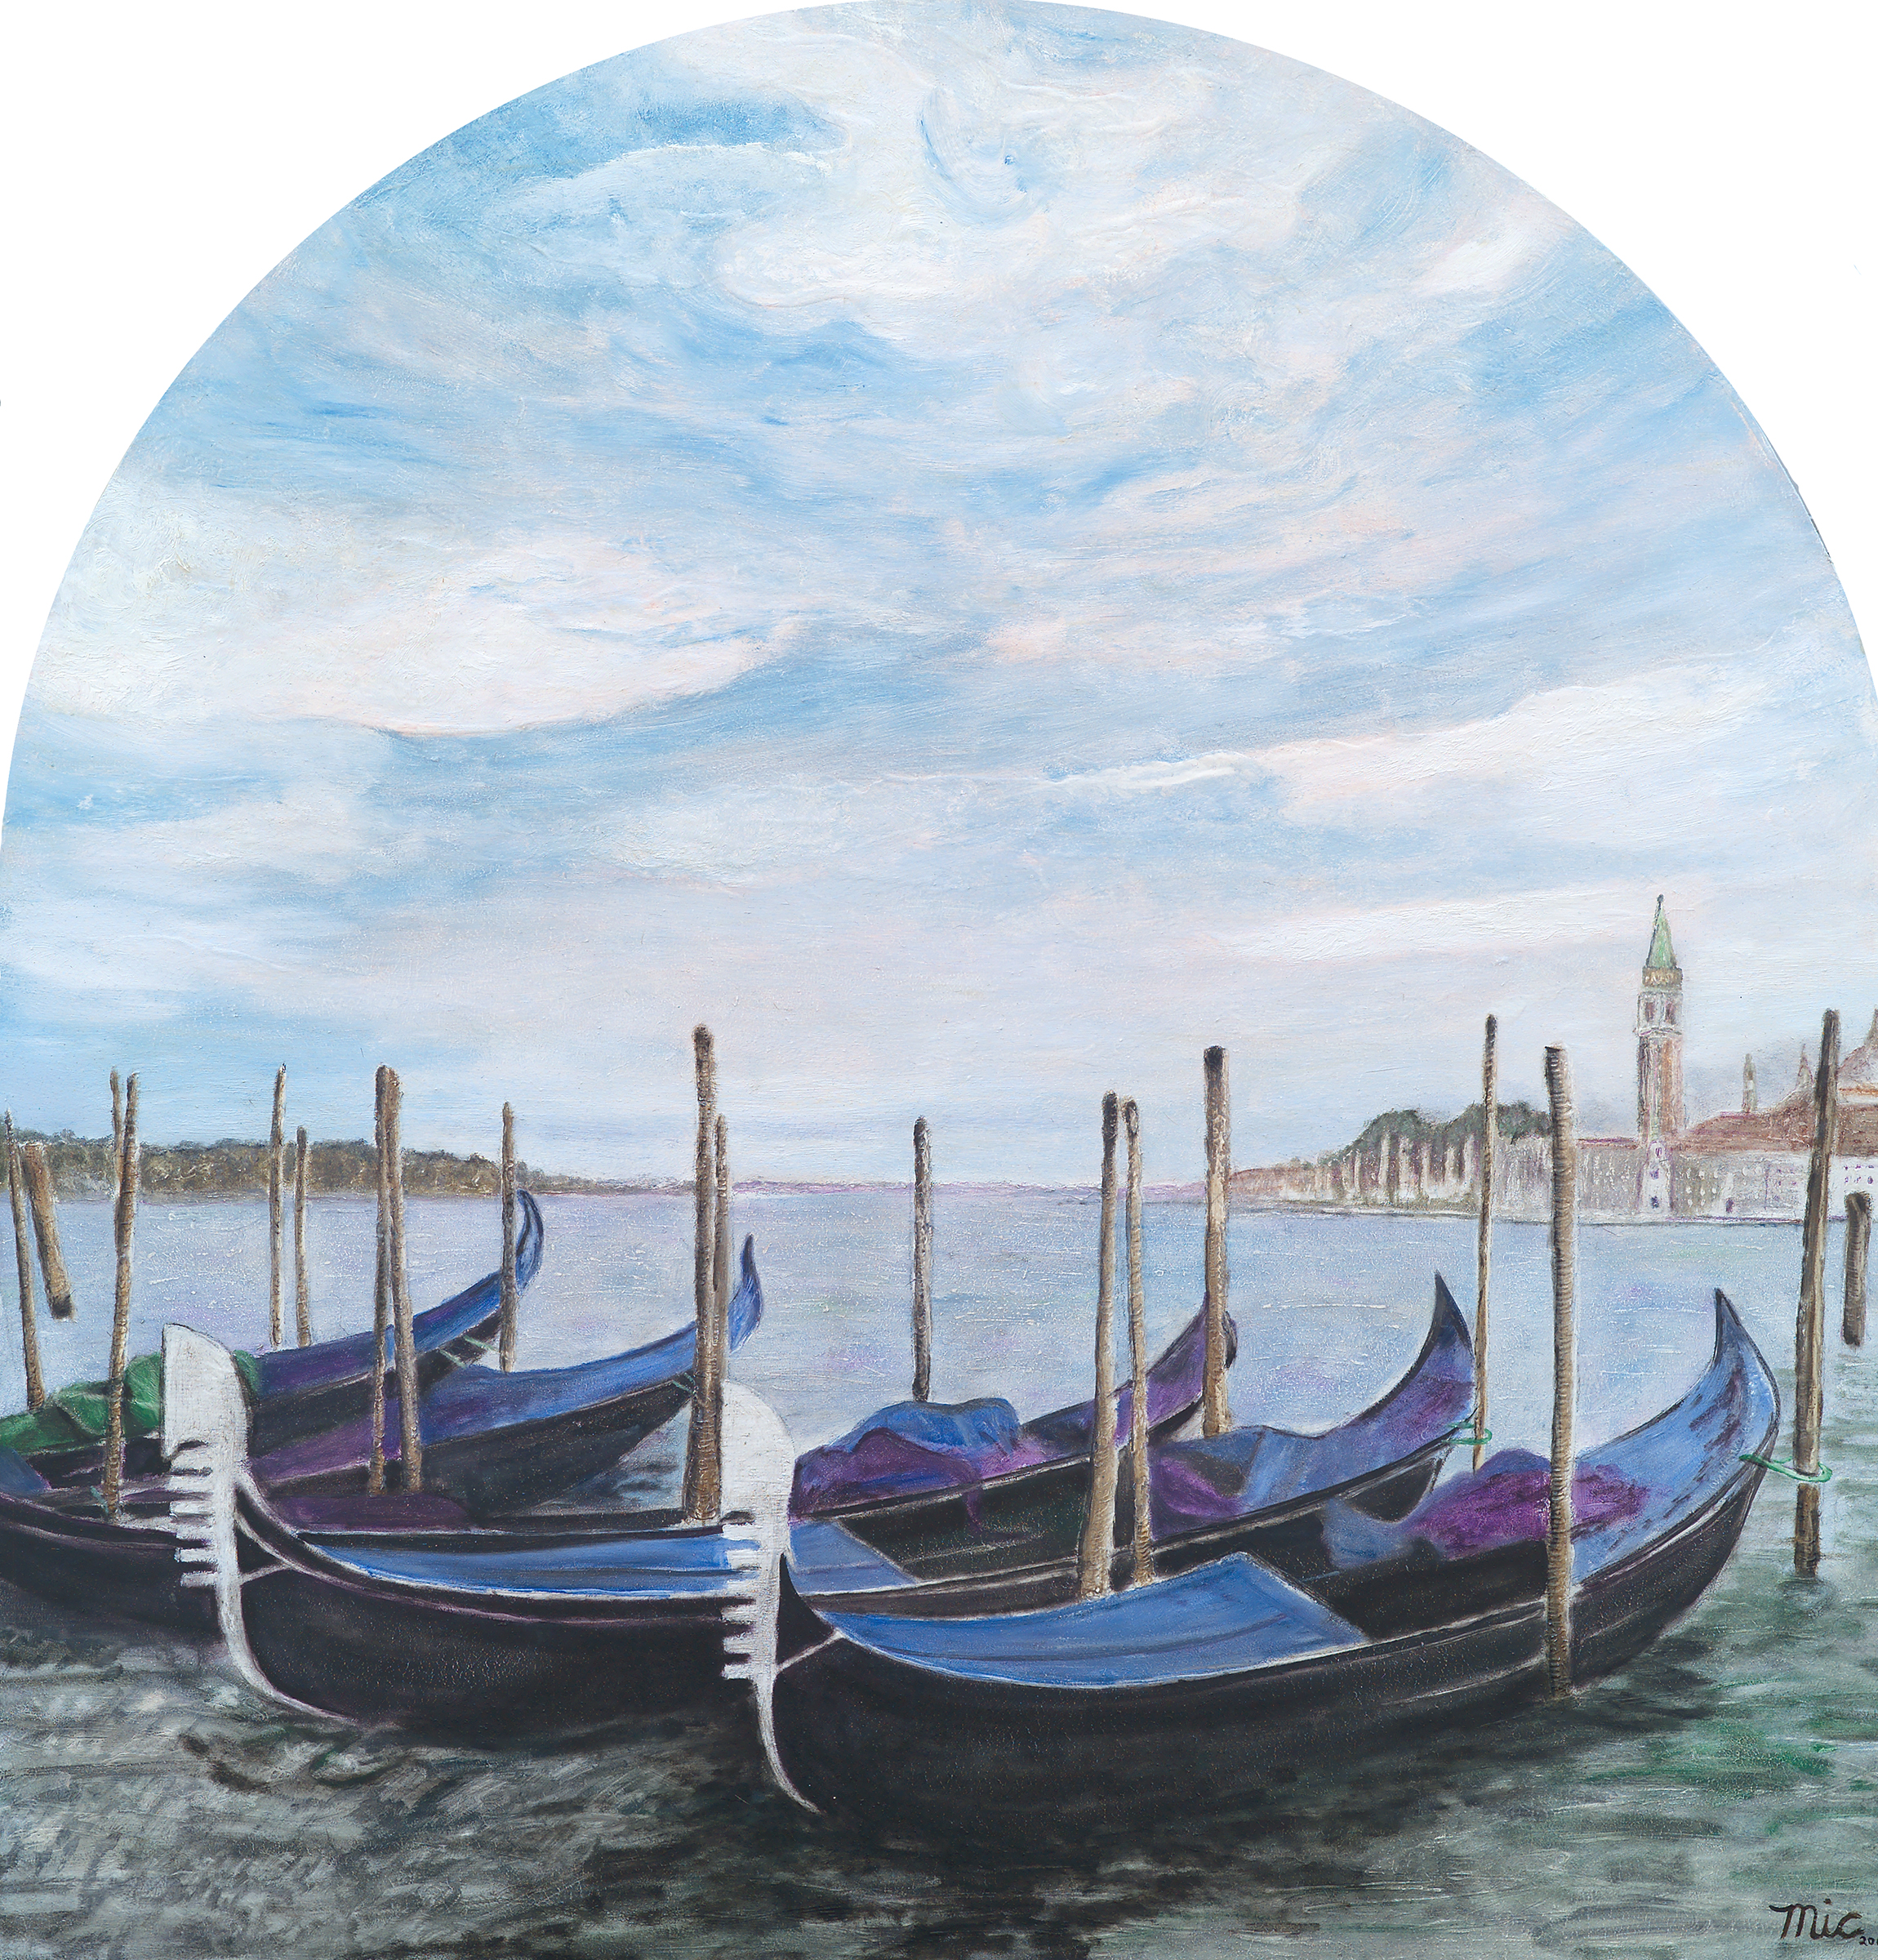 Gondolas in Venice - Oil on panel, Private collection Sam VitaleGiclee Limited Edition and canvas prints are available. Please visit the prints gallery.